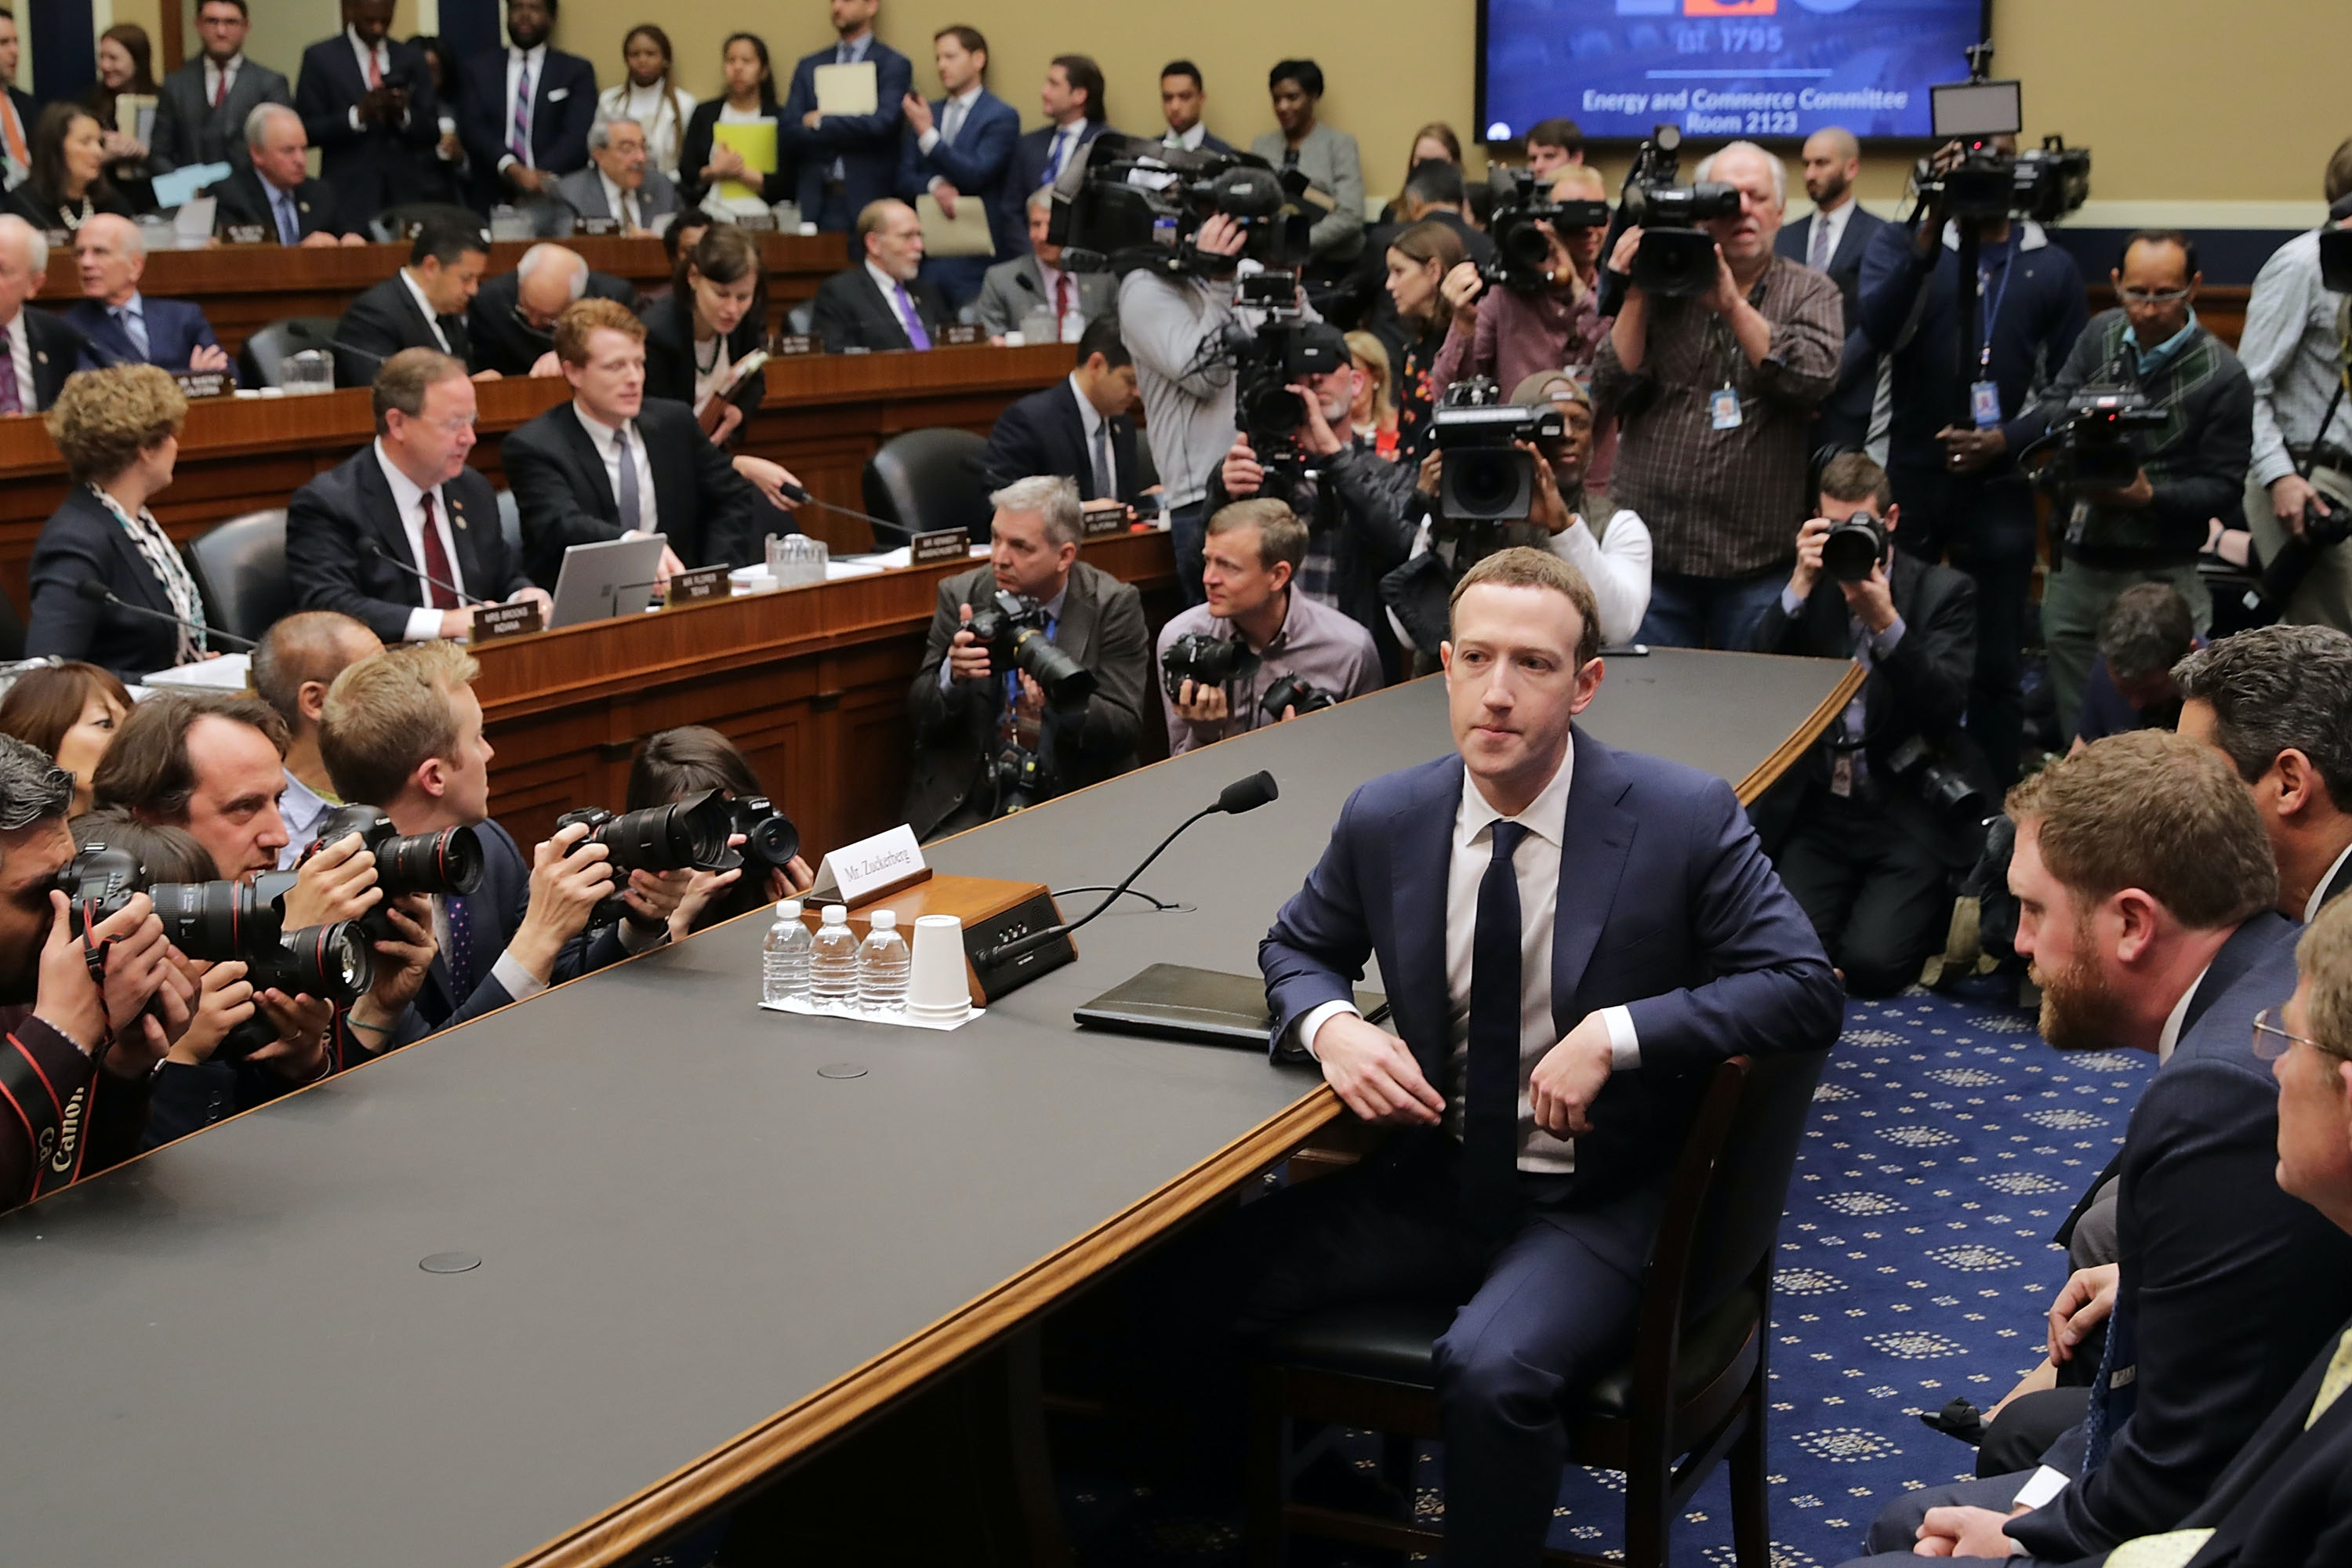 The two ways Zuckerberg dodged every question from Congress